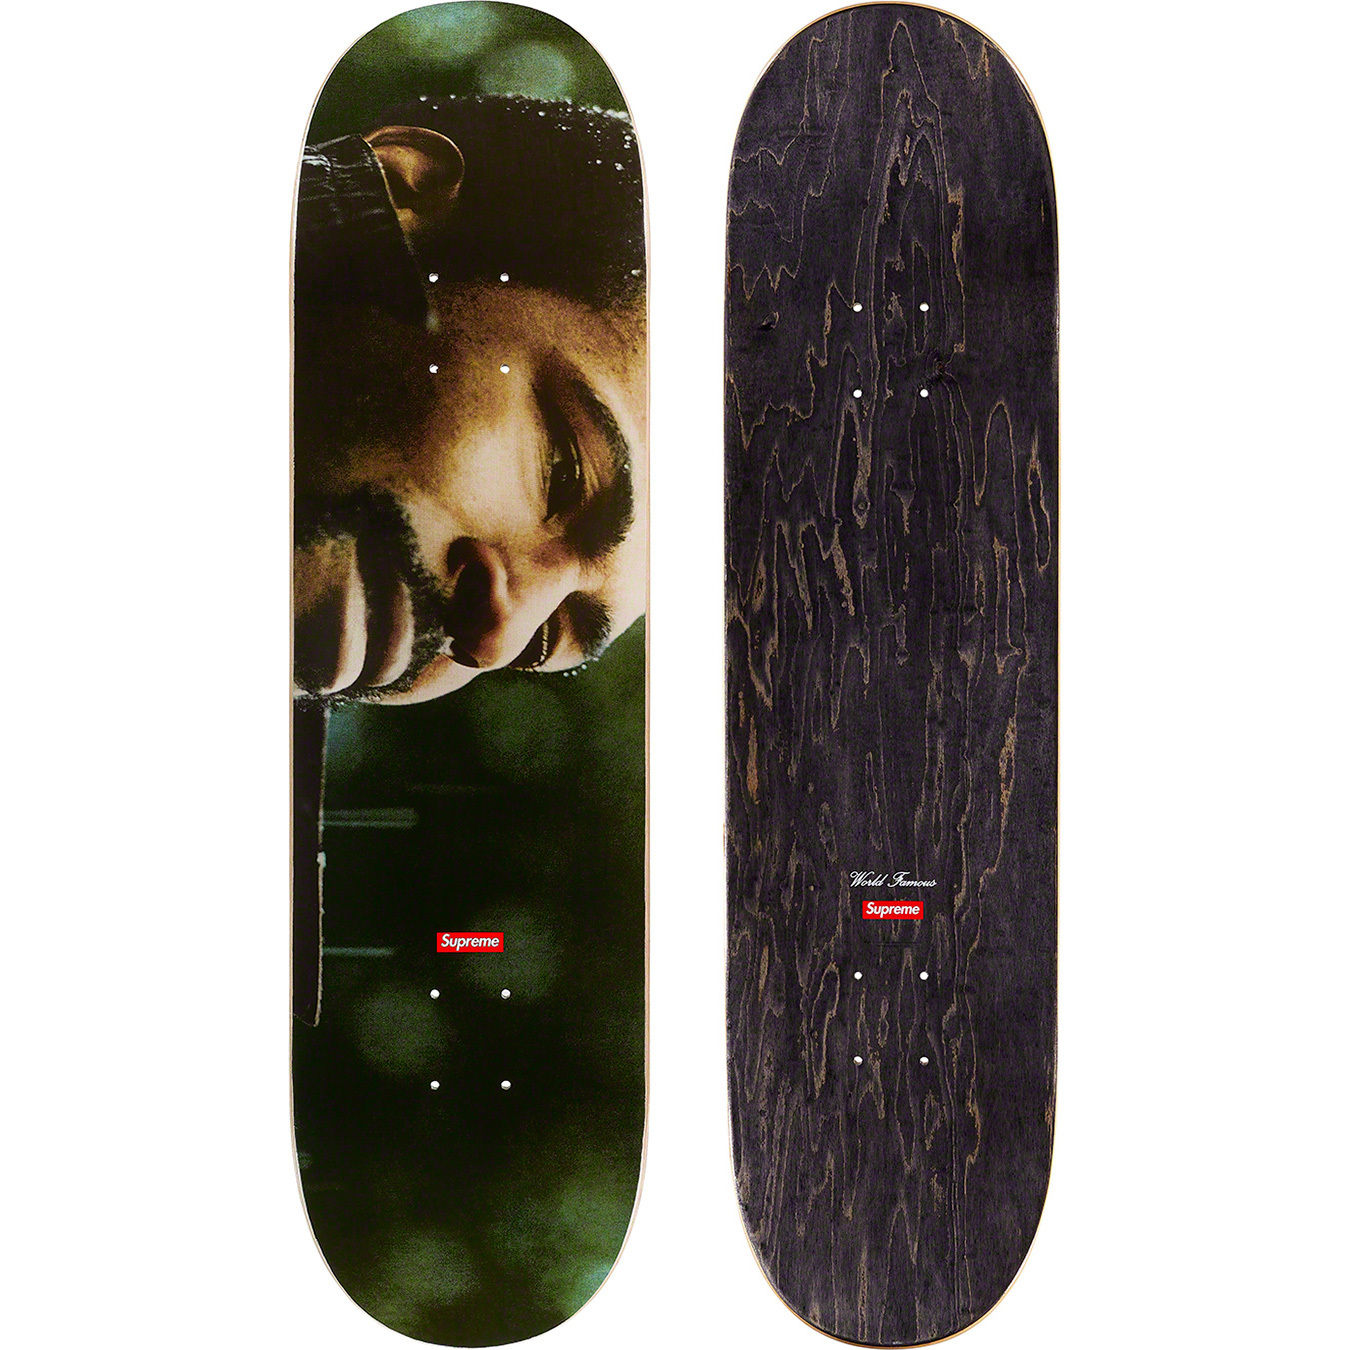 supreme-online-store-20181215-week17-release-items-marvin-gaye-skateboard-deck